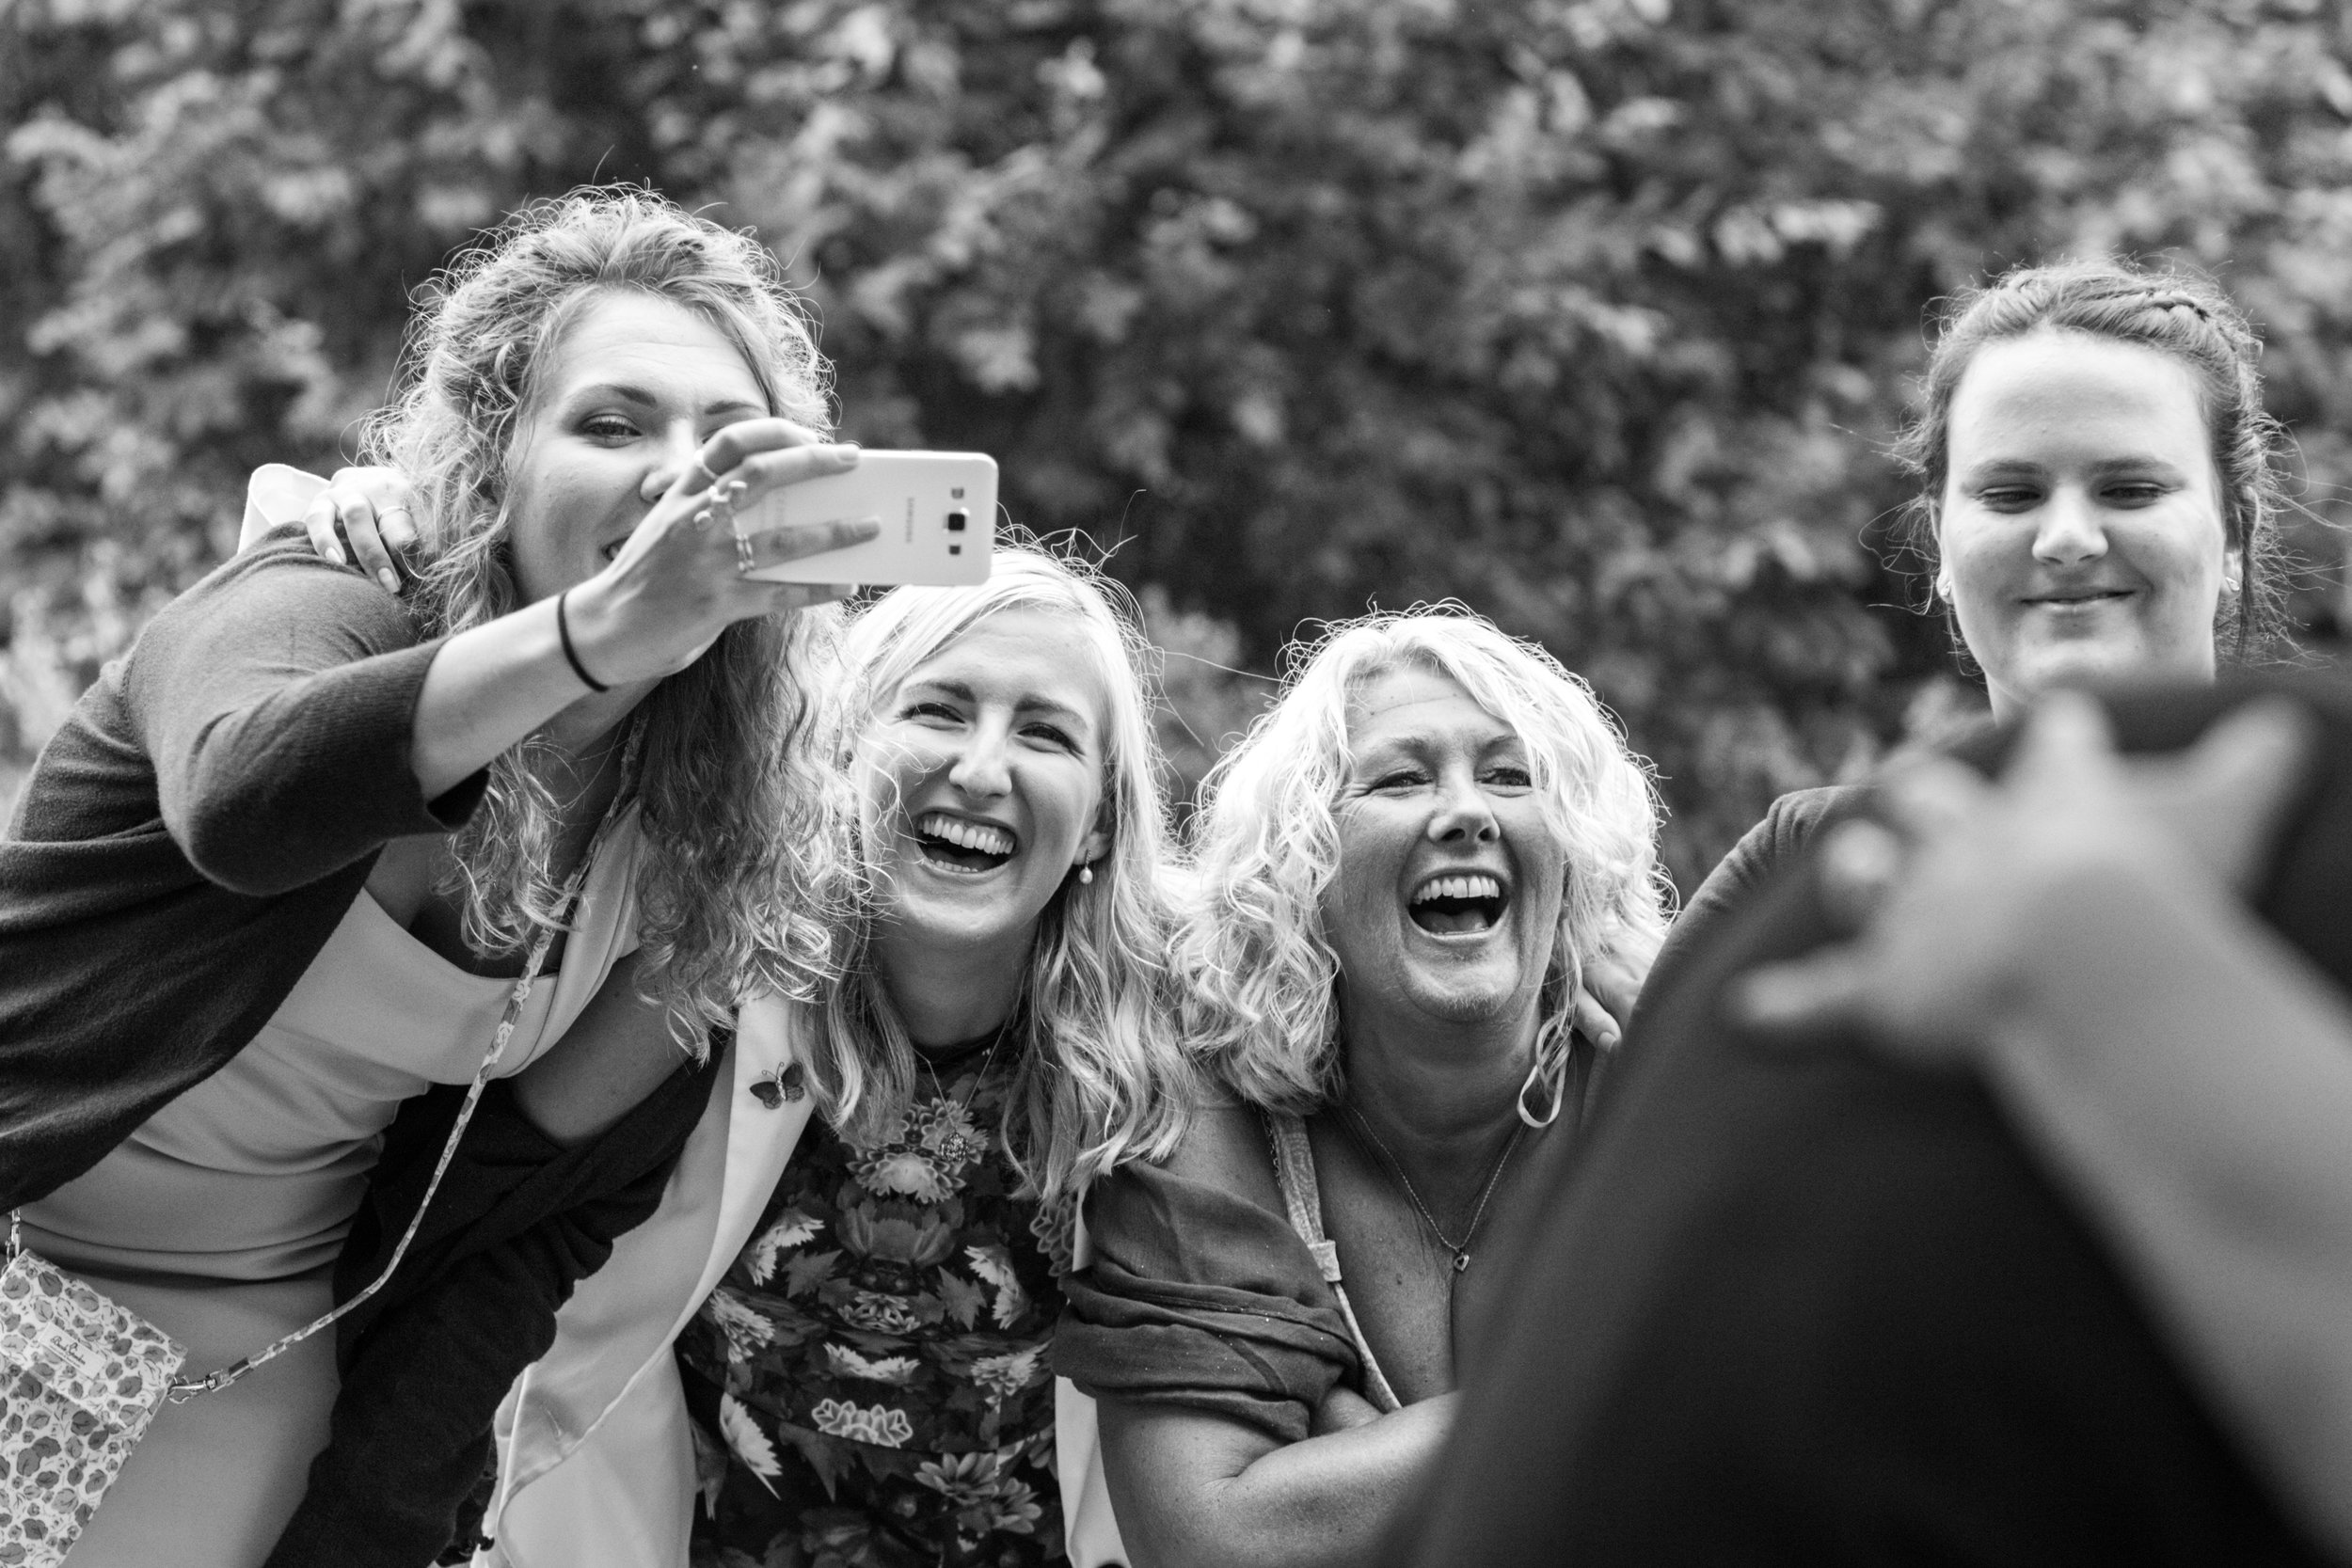 Guests selfie time, UK festival wedding photography